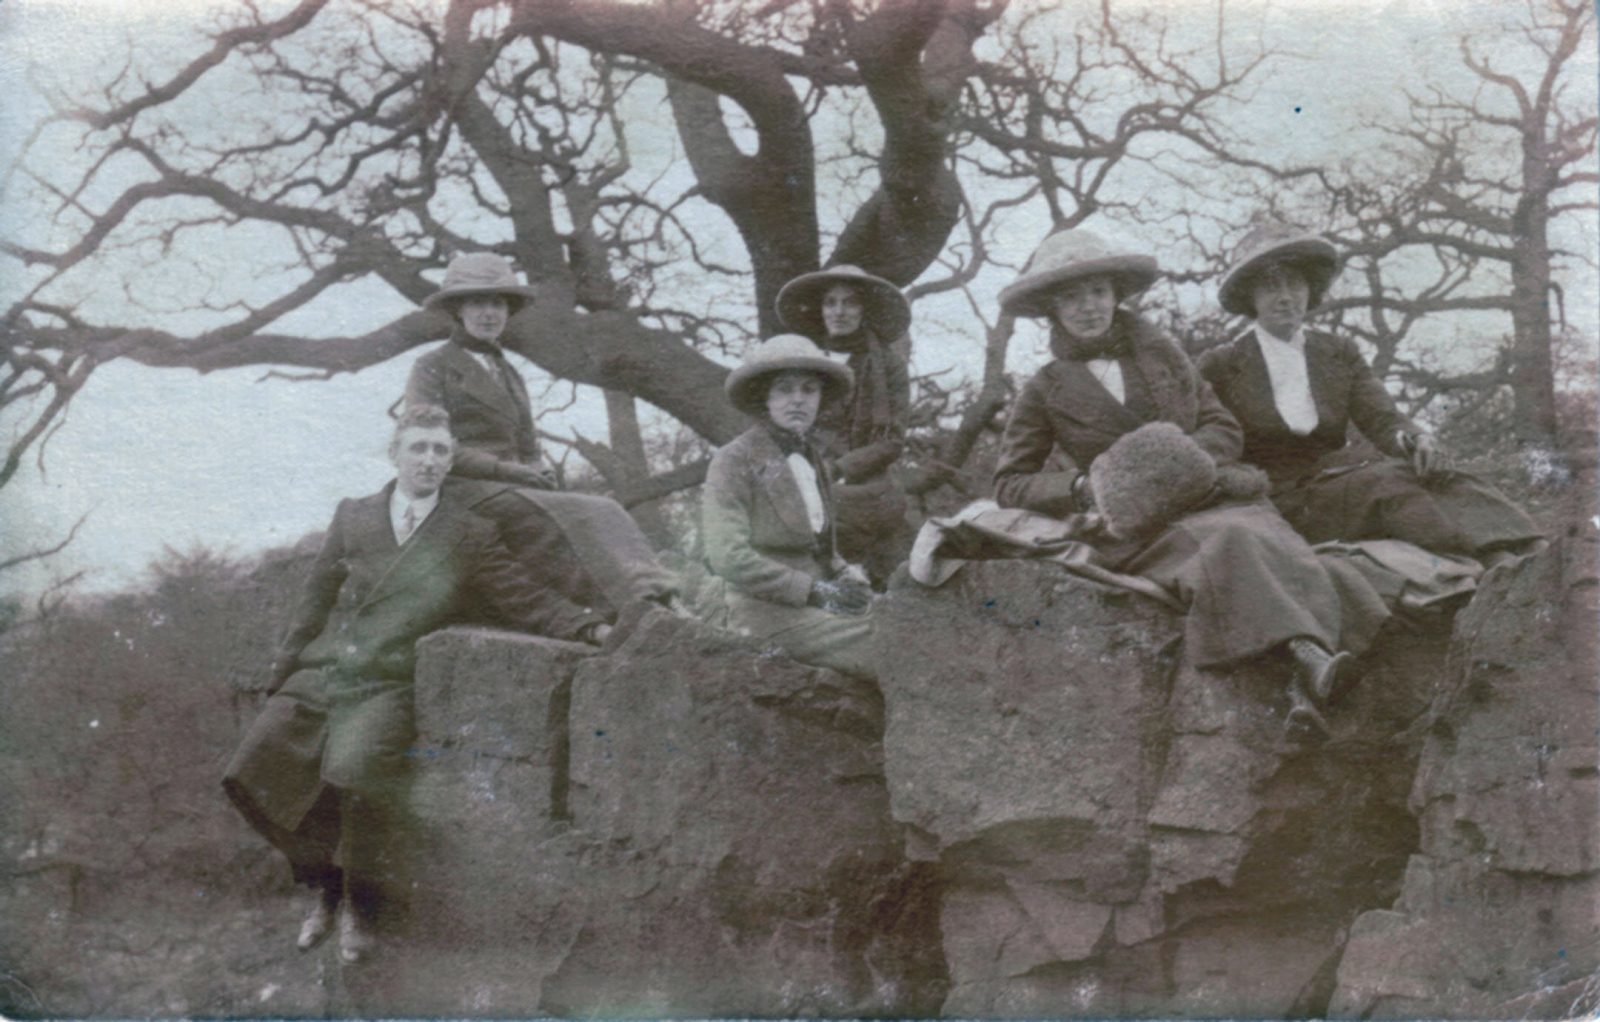 Bradgate Park, Leicester. 1901-1920: Edwardian walkers - male and female, sitting on rocks. (File:1125)